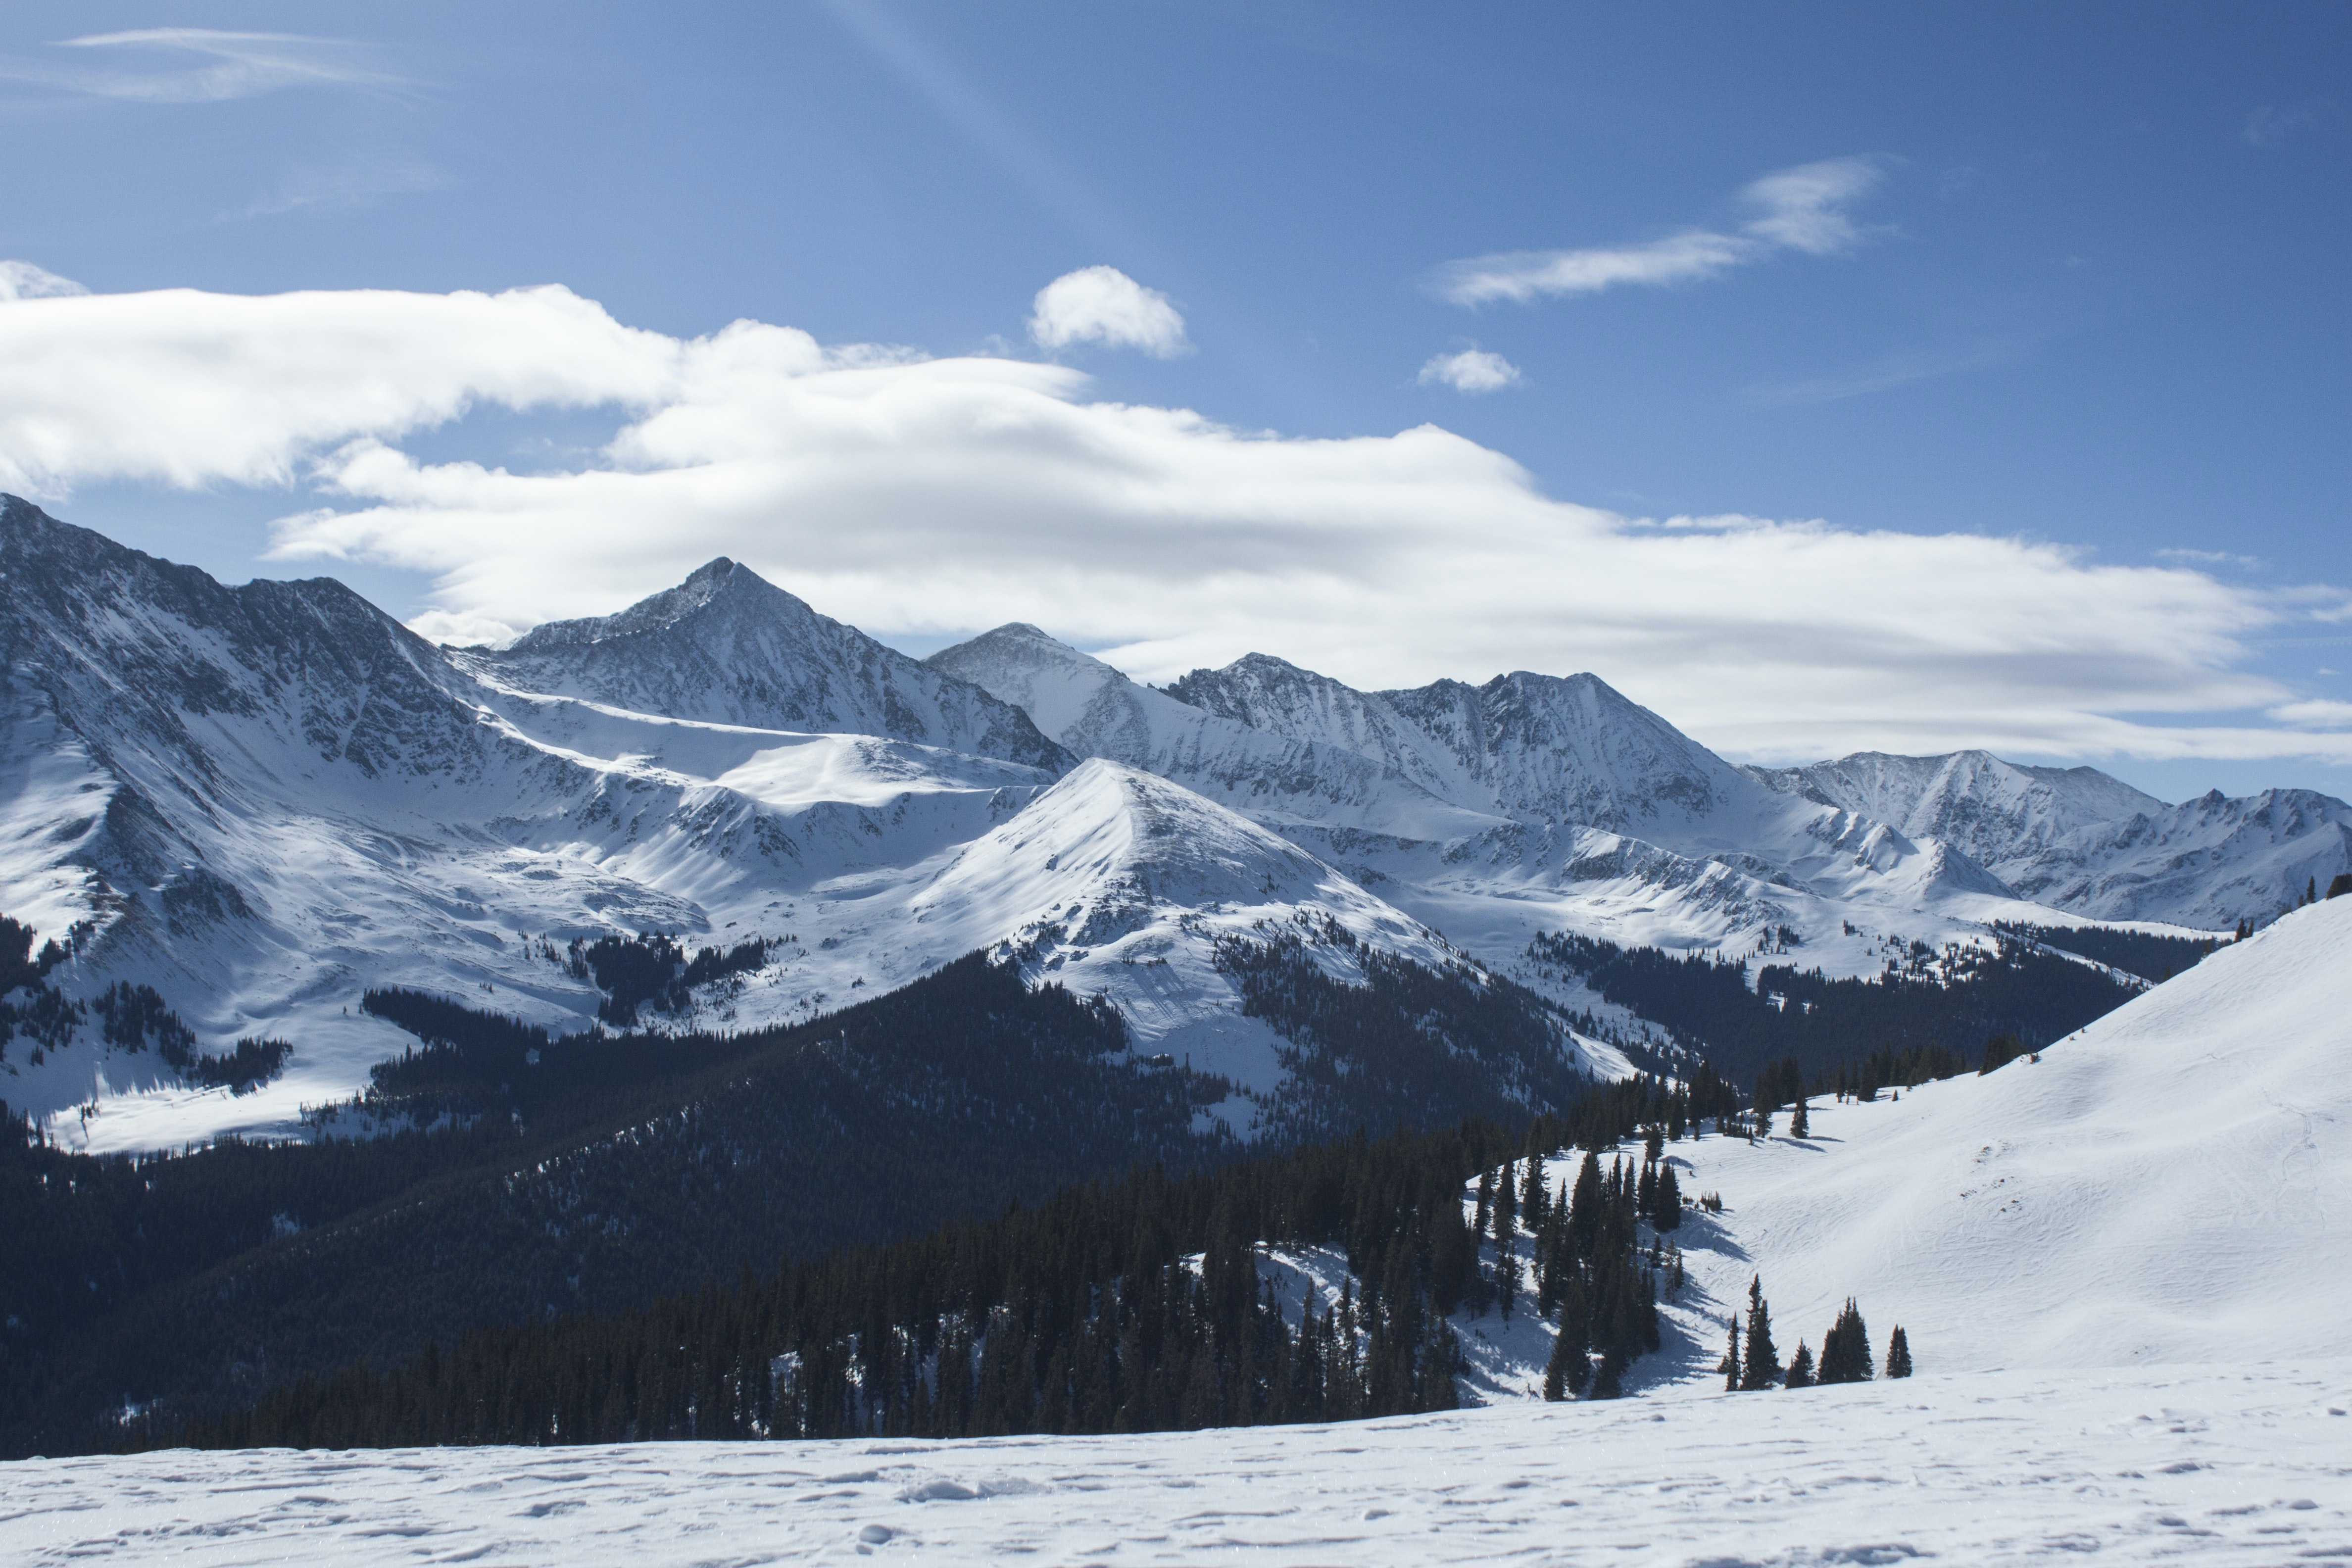 The snowy peaks of Copper Mountain range with a forest at its feet